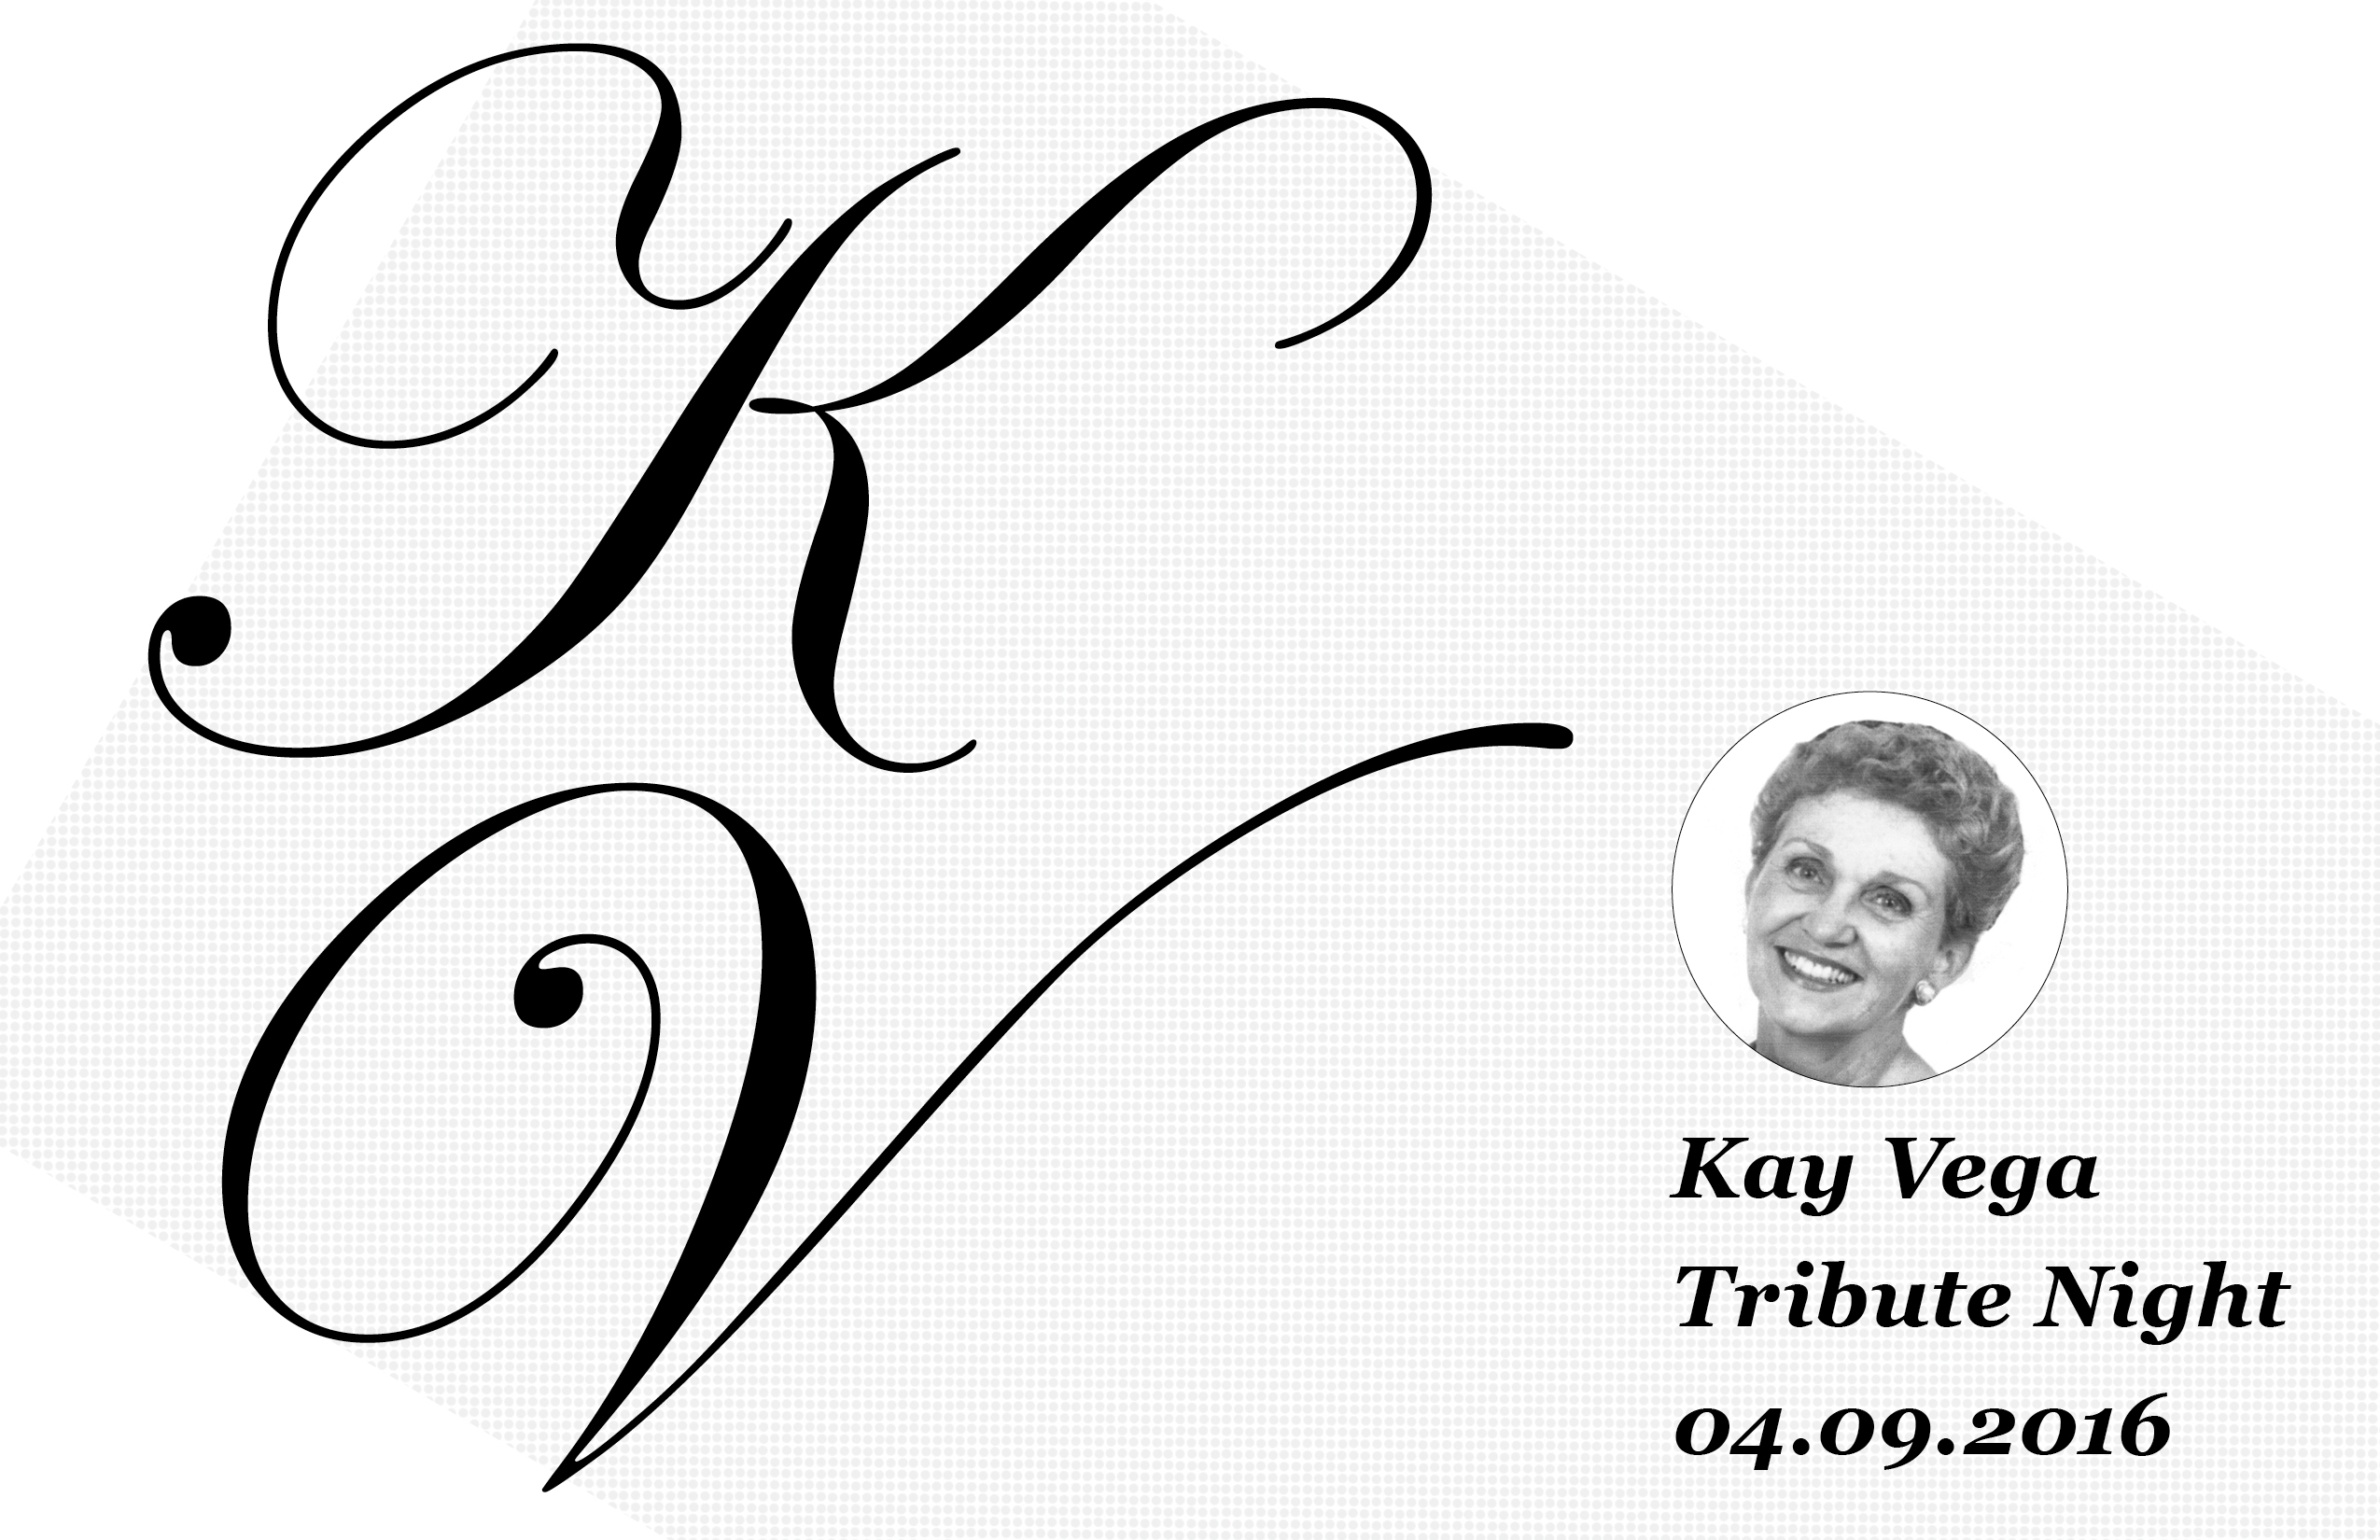 kay_tribute_invite_web3.jpg